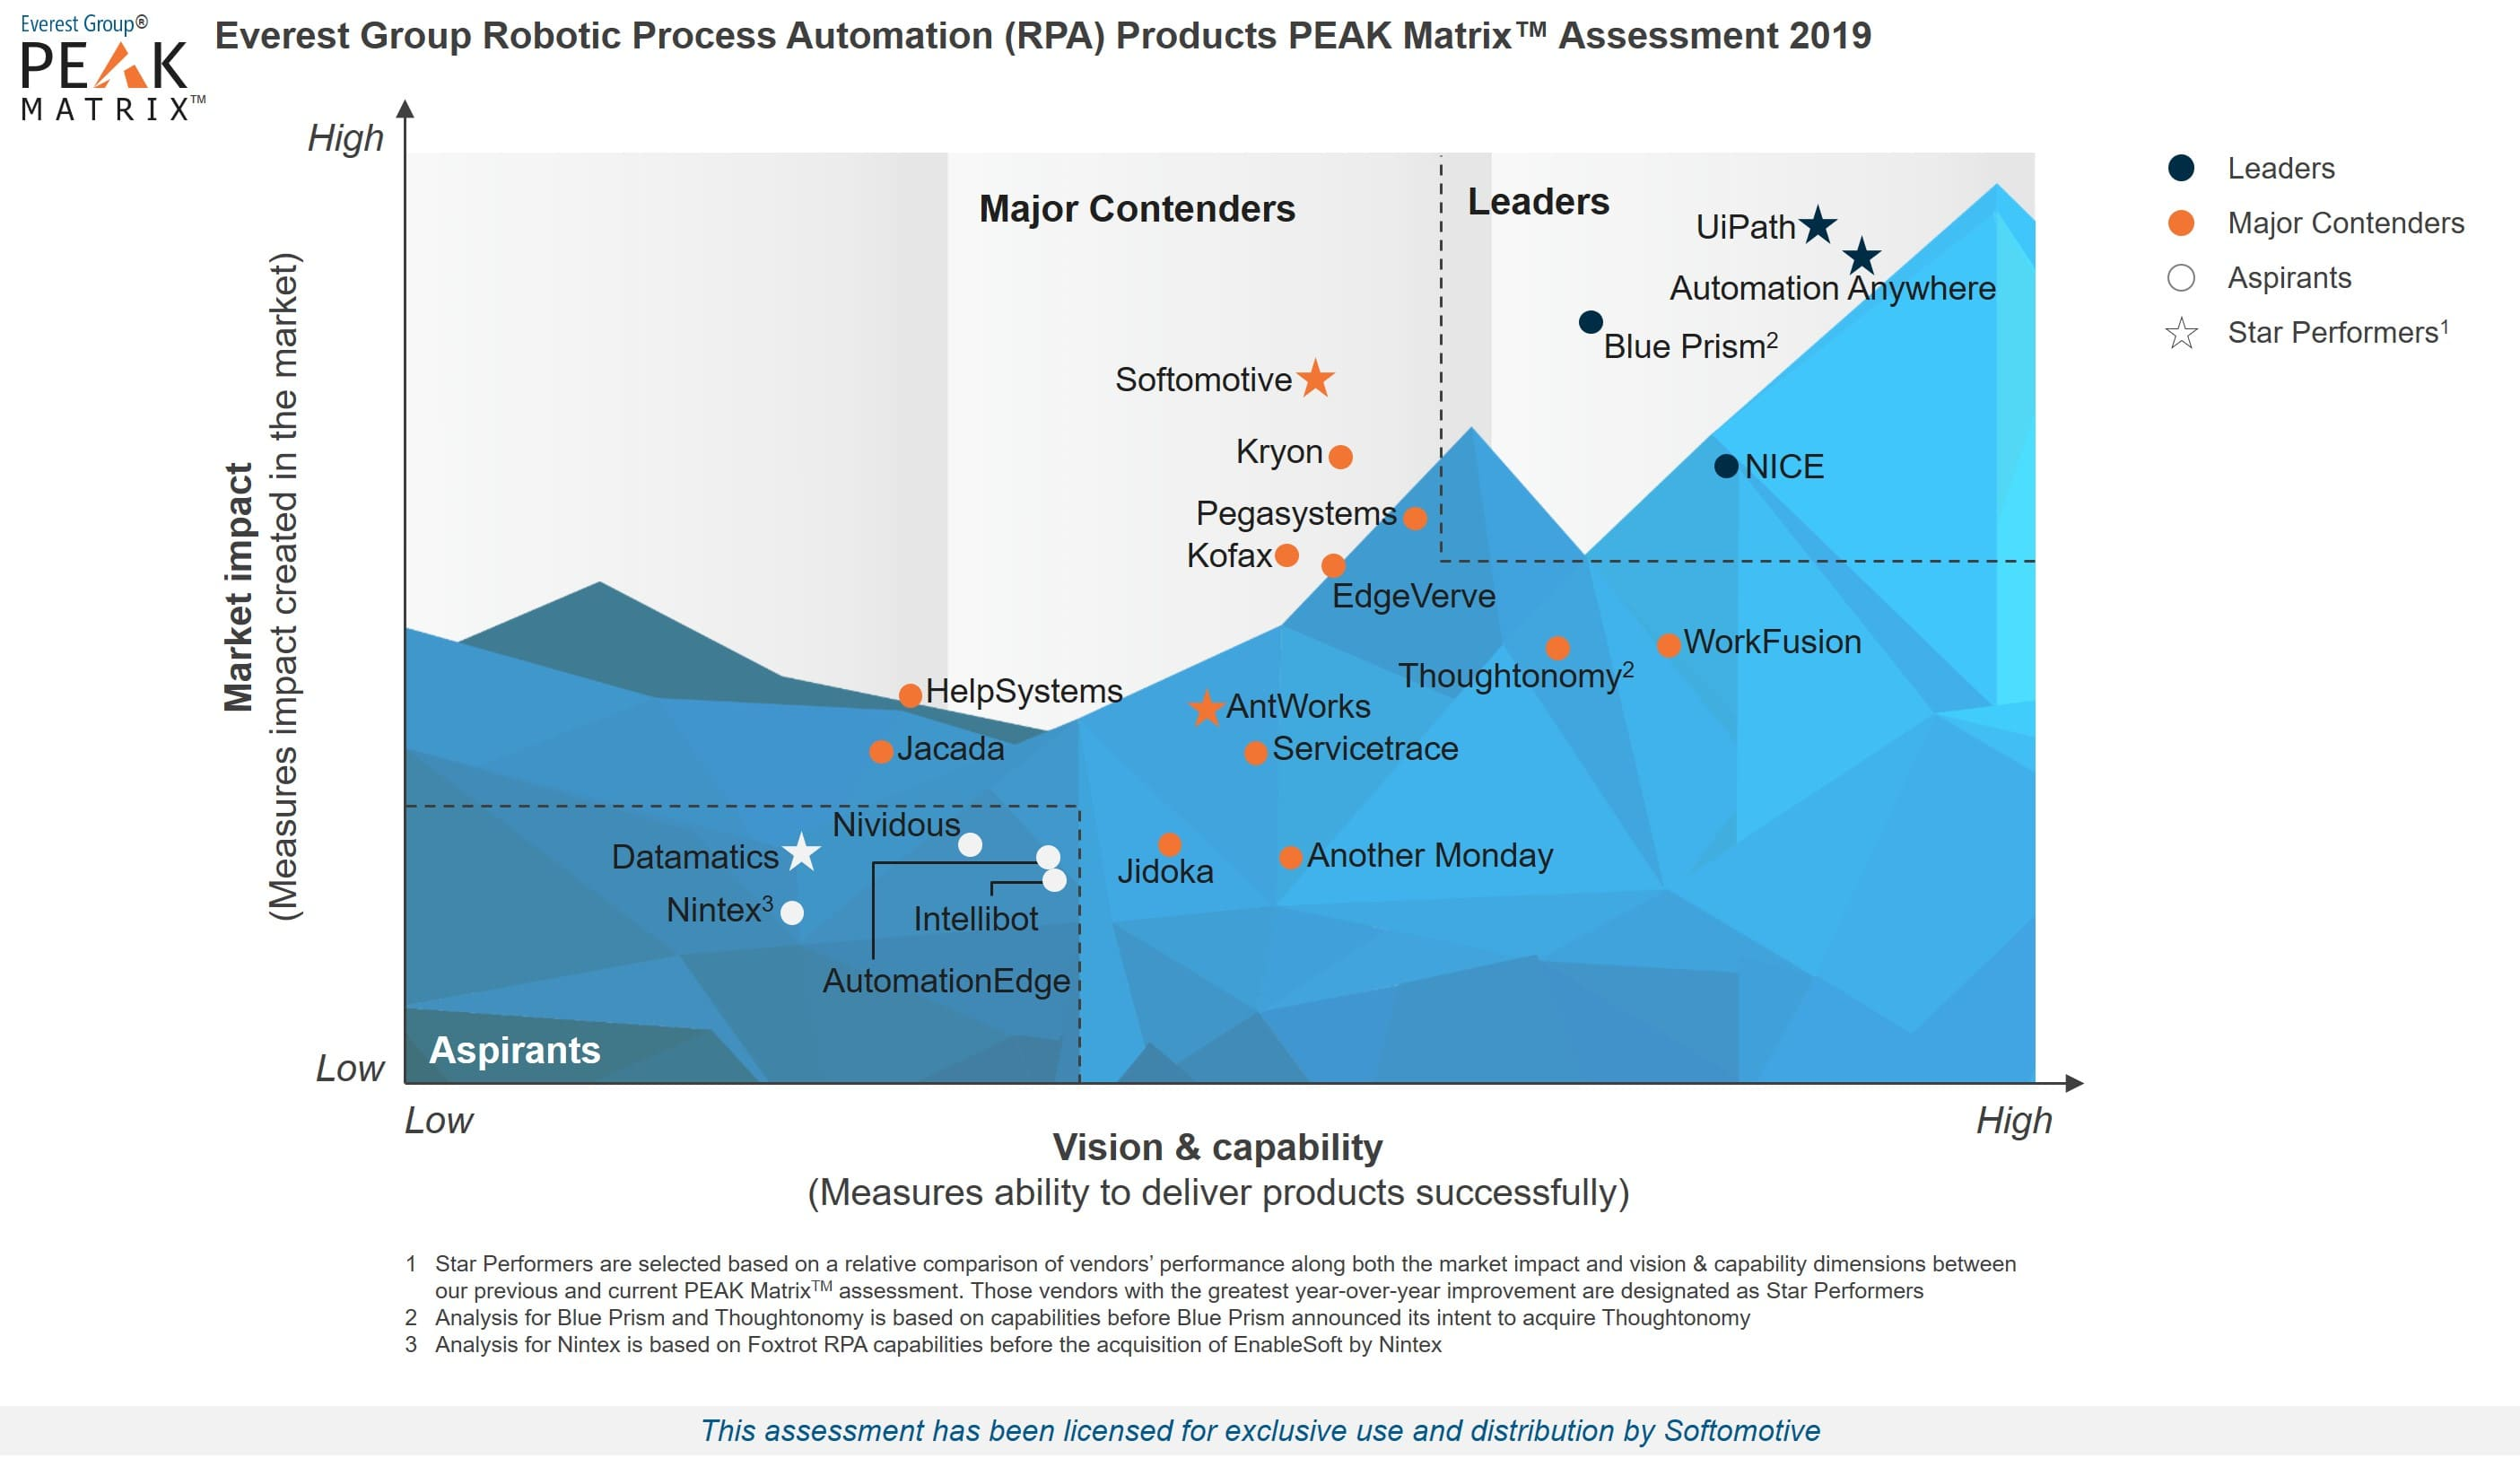 Robotic Process Automation (RPA) Products PEAK Matrix™ Assessment 2019